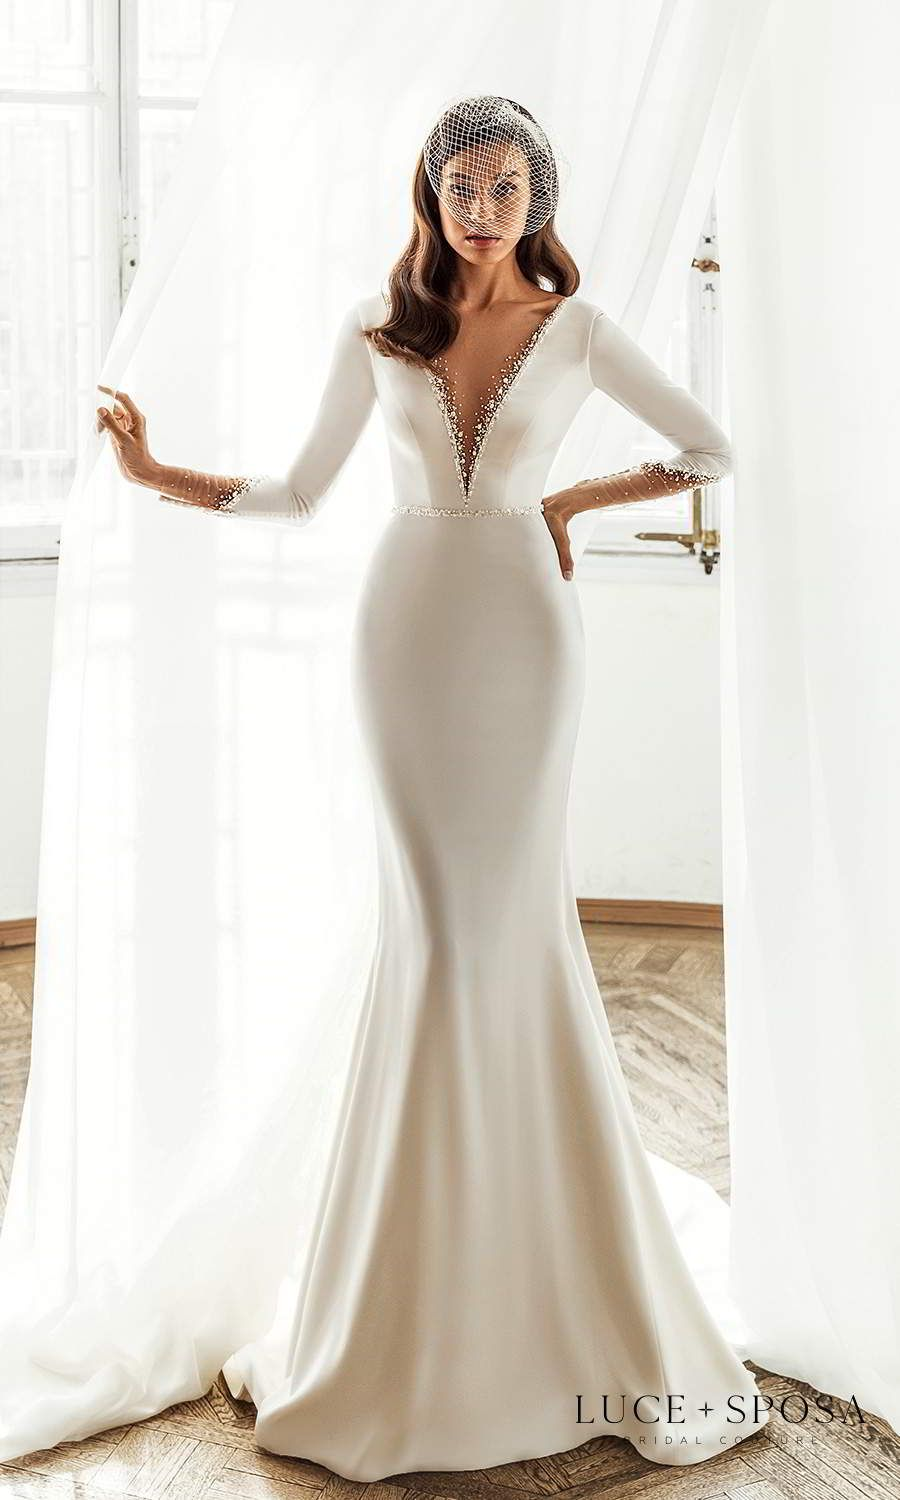 Luce Sposa 2021 Shades Of Couture Wedding Dresses Wedding Inspirasi In 2021 Wedding Dress Couture Wedding Dresses Wedding Gown Inspiration [ 1500 x 900 Pixel ]